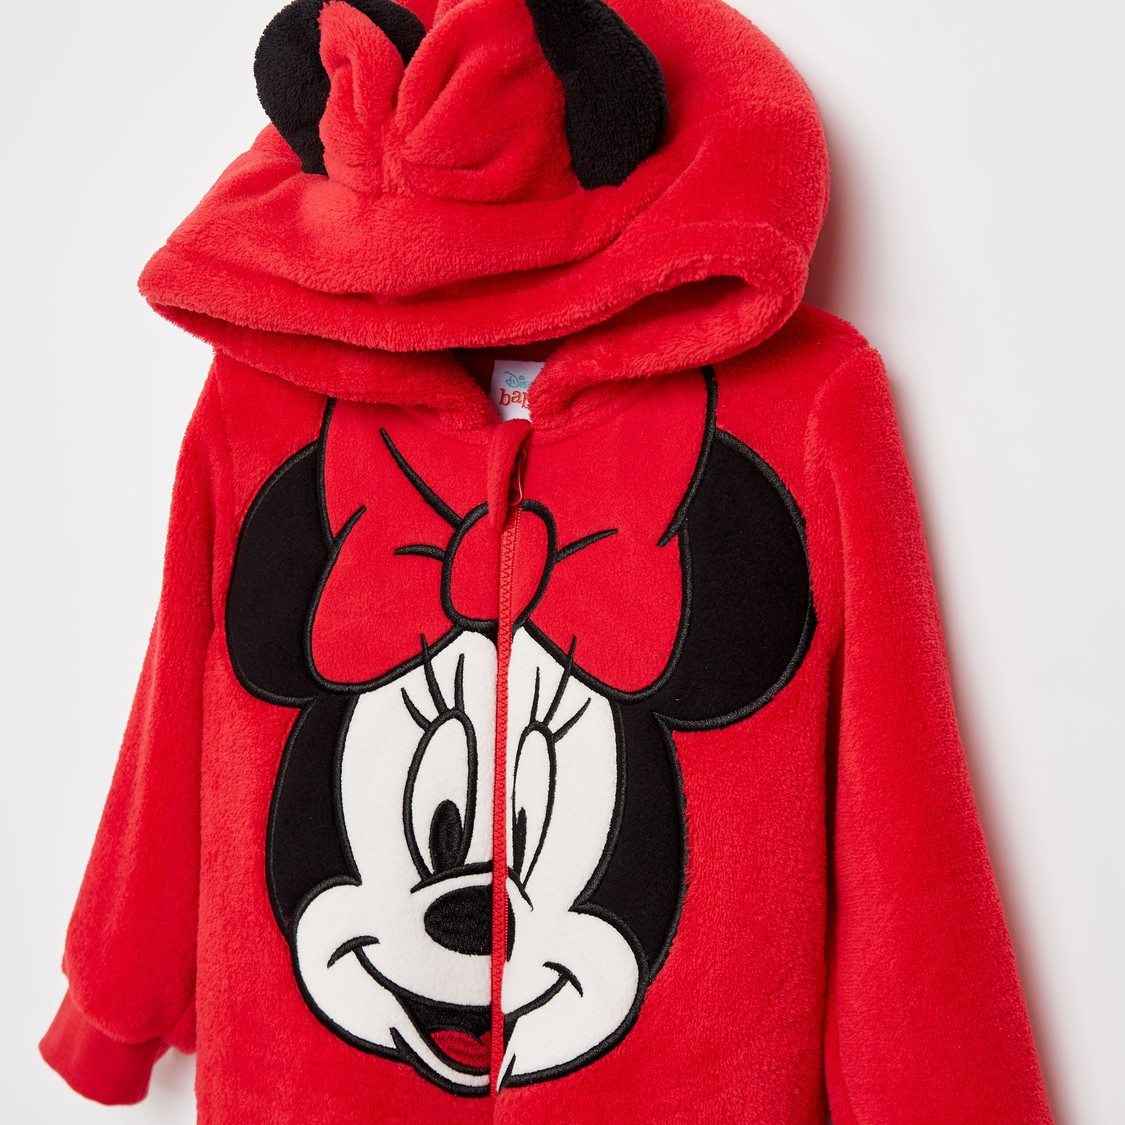 Minnie Mouse Print Hooded Romper with Zip Closure